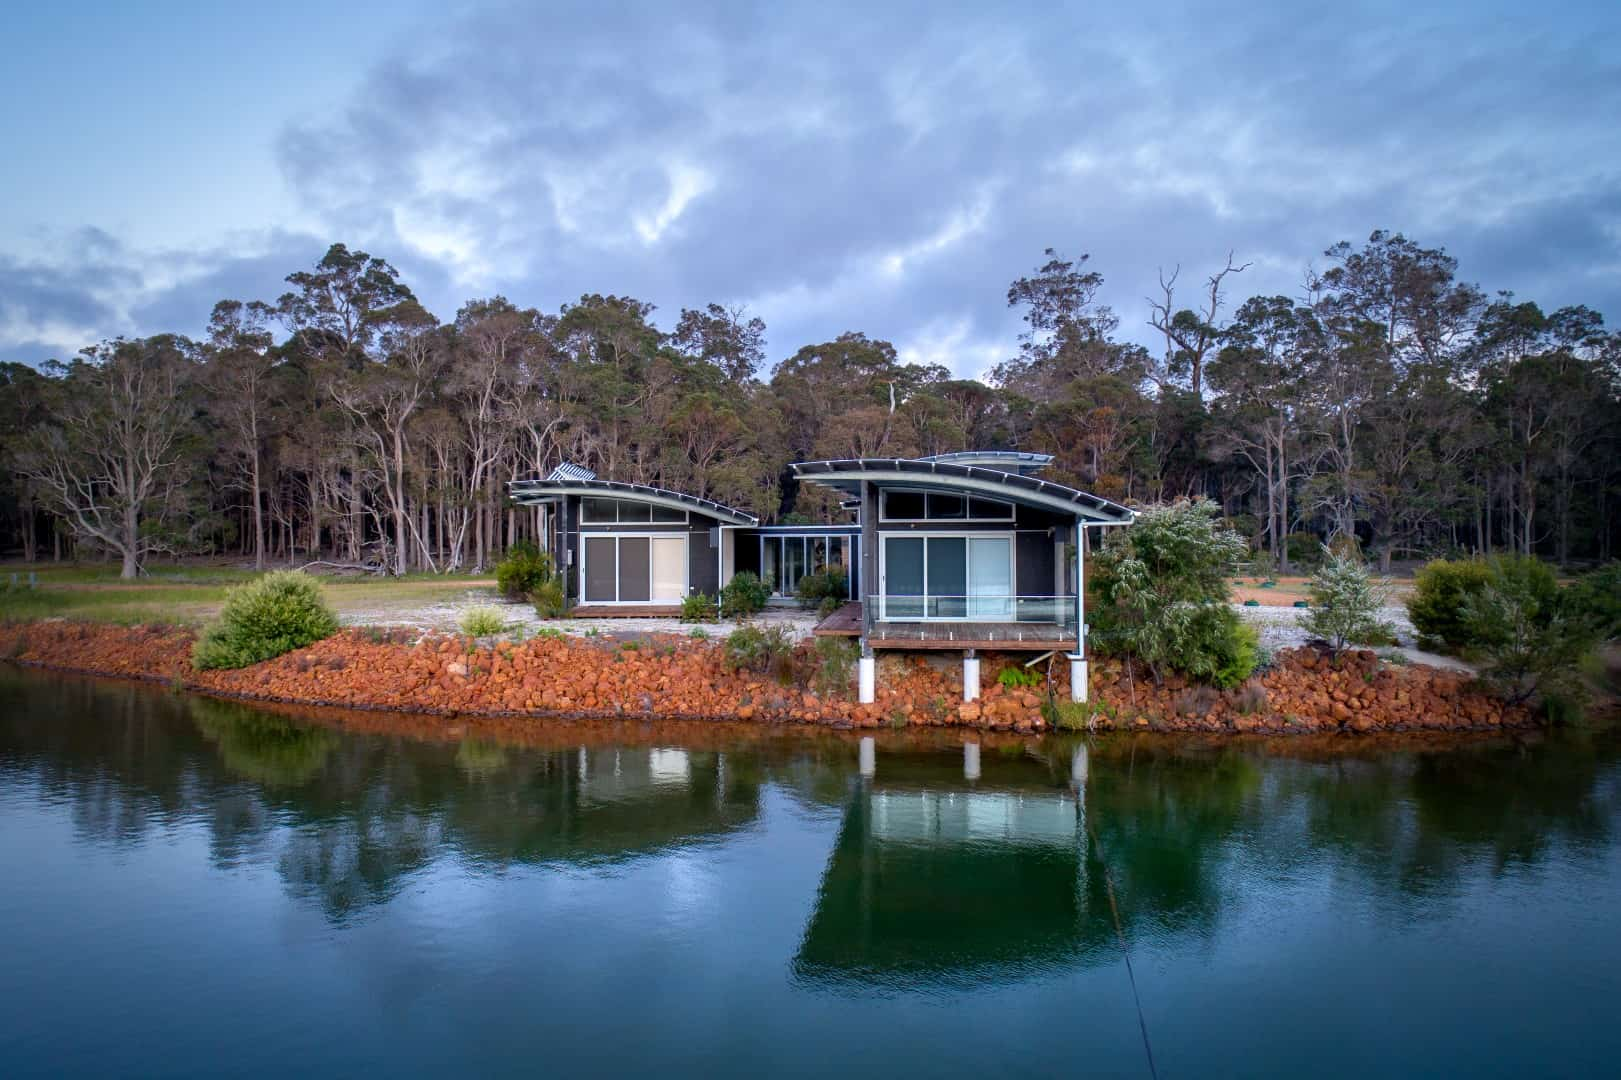 An off the grid lakehouse designed by Theo Mathews Architect near Dunsborough Western Australia